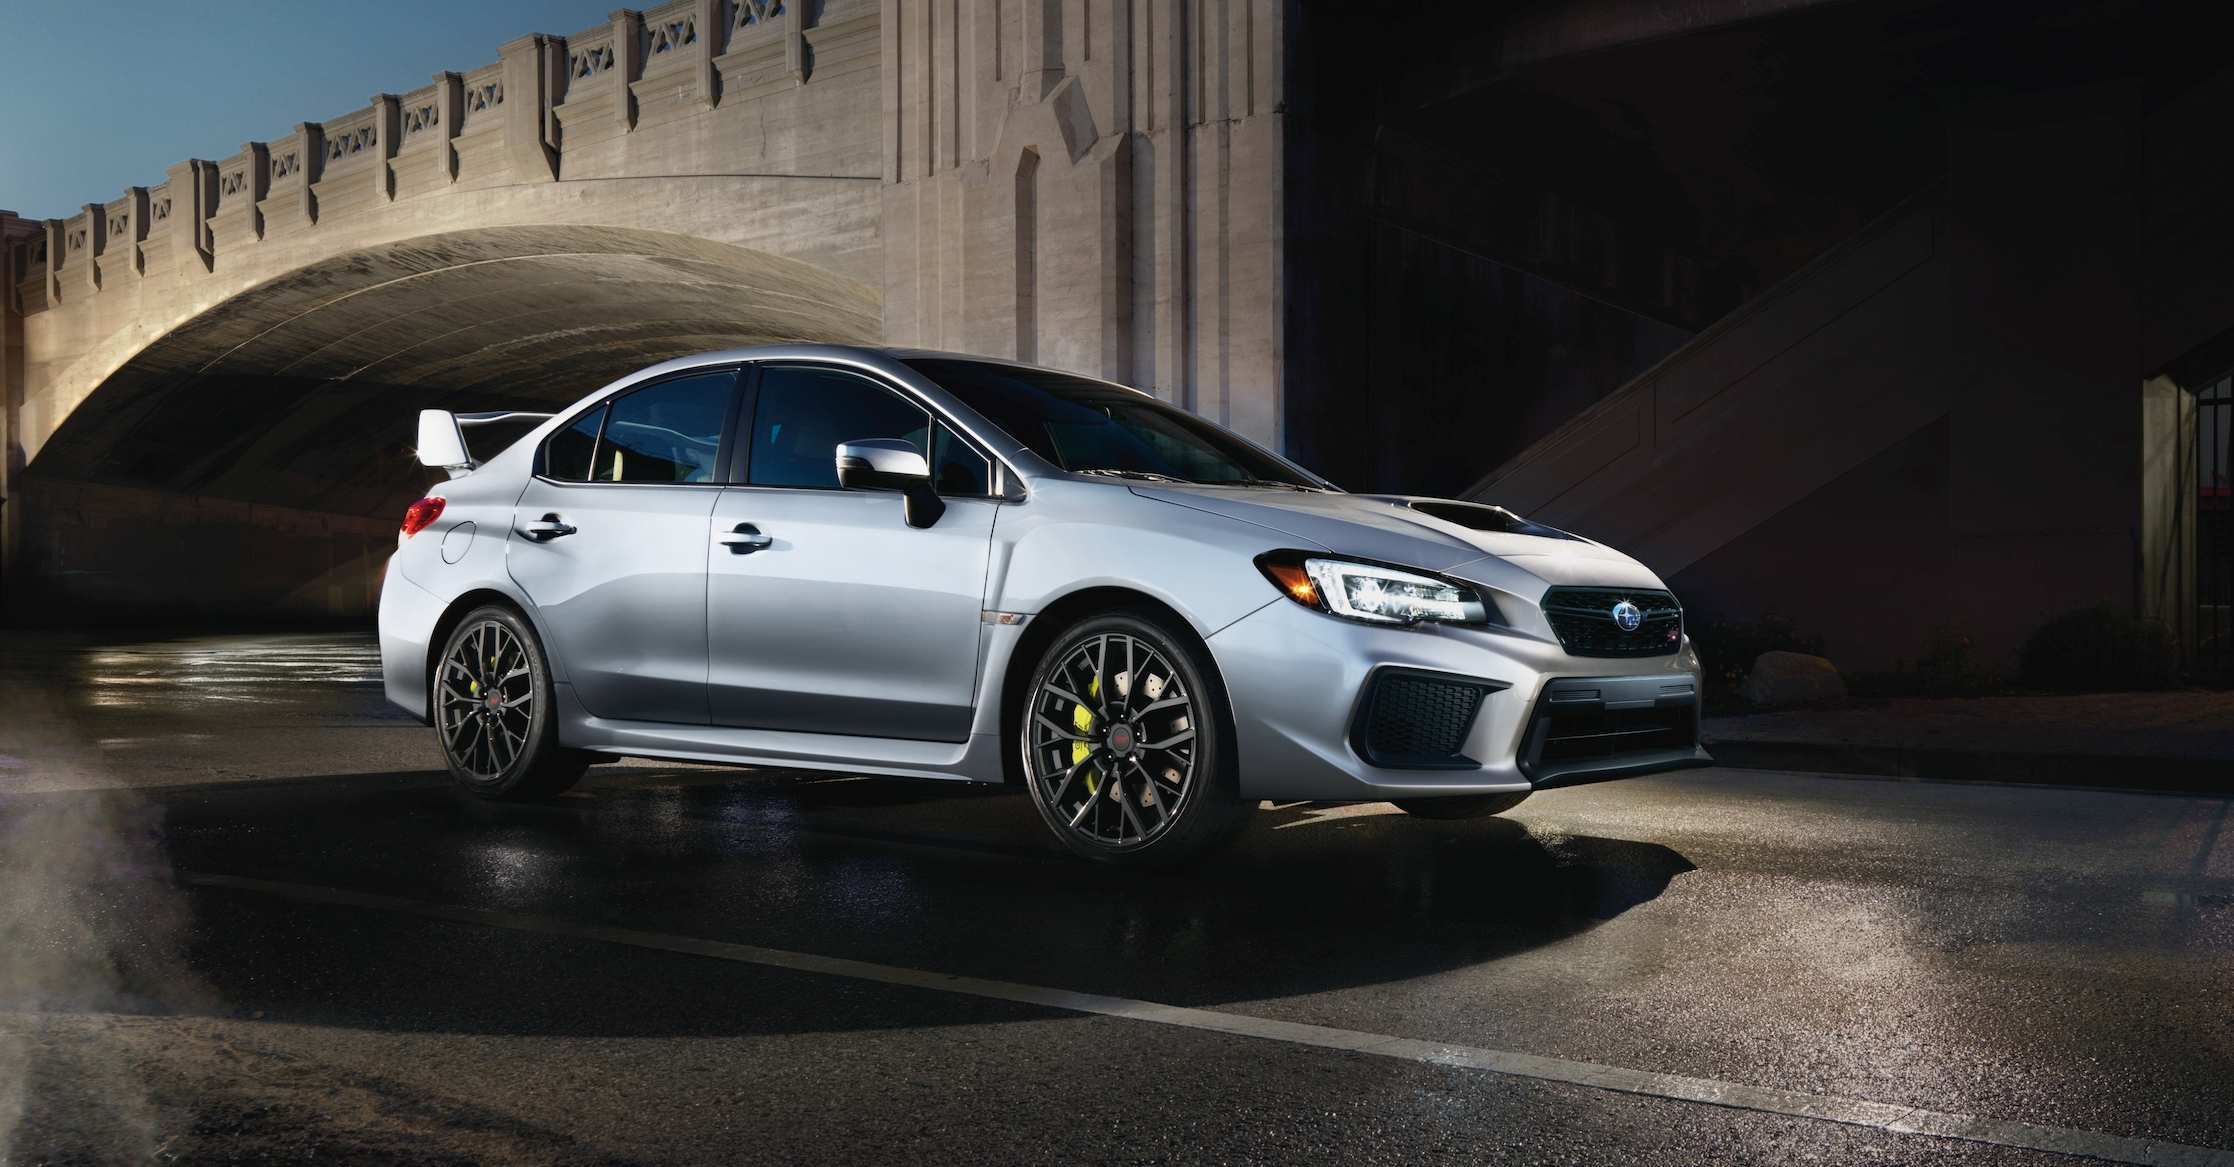 73 All New Subaru Wrx 2019 Release Date Picture